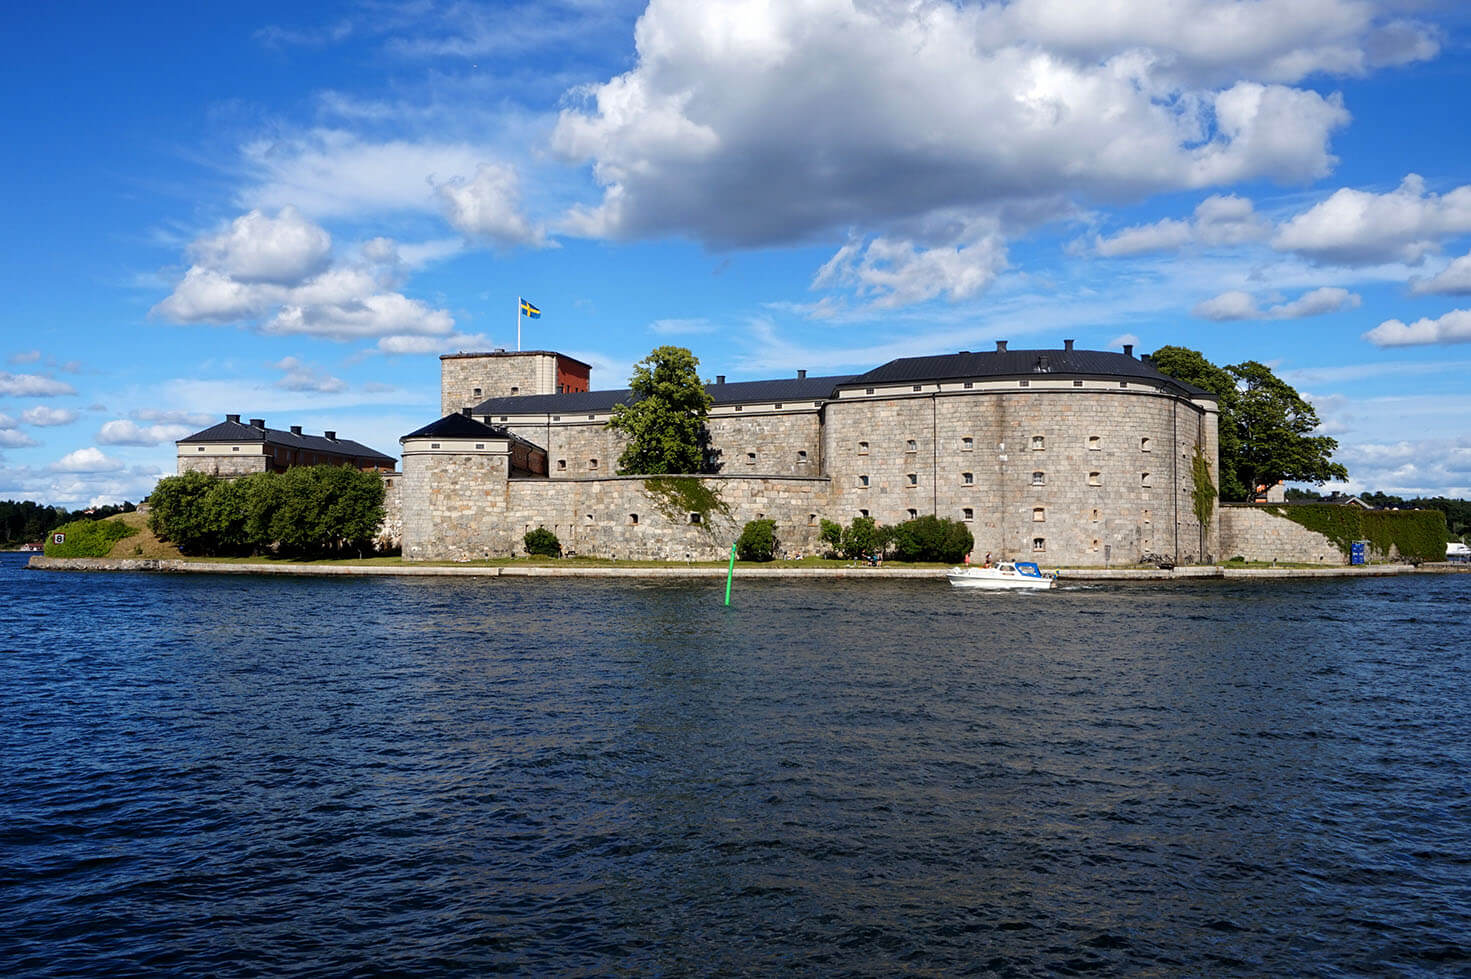 Vaxholm Castle and Fortress